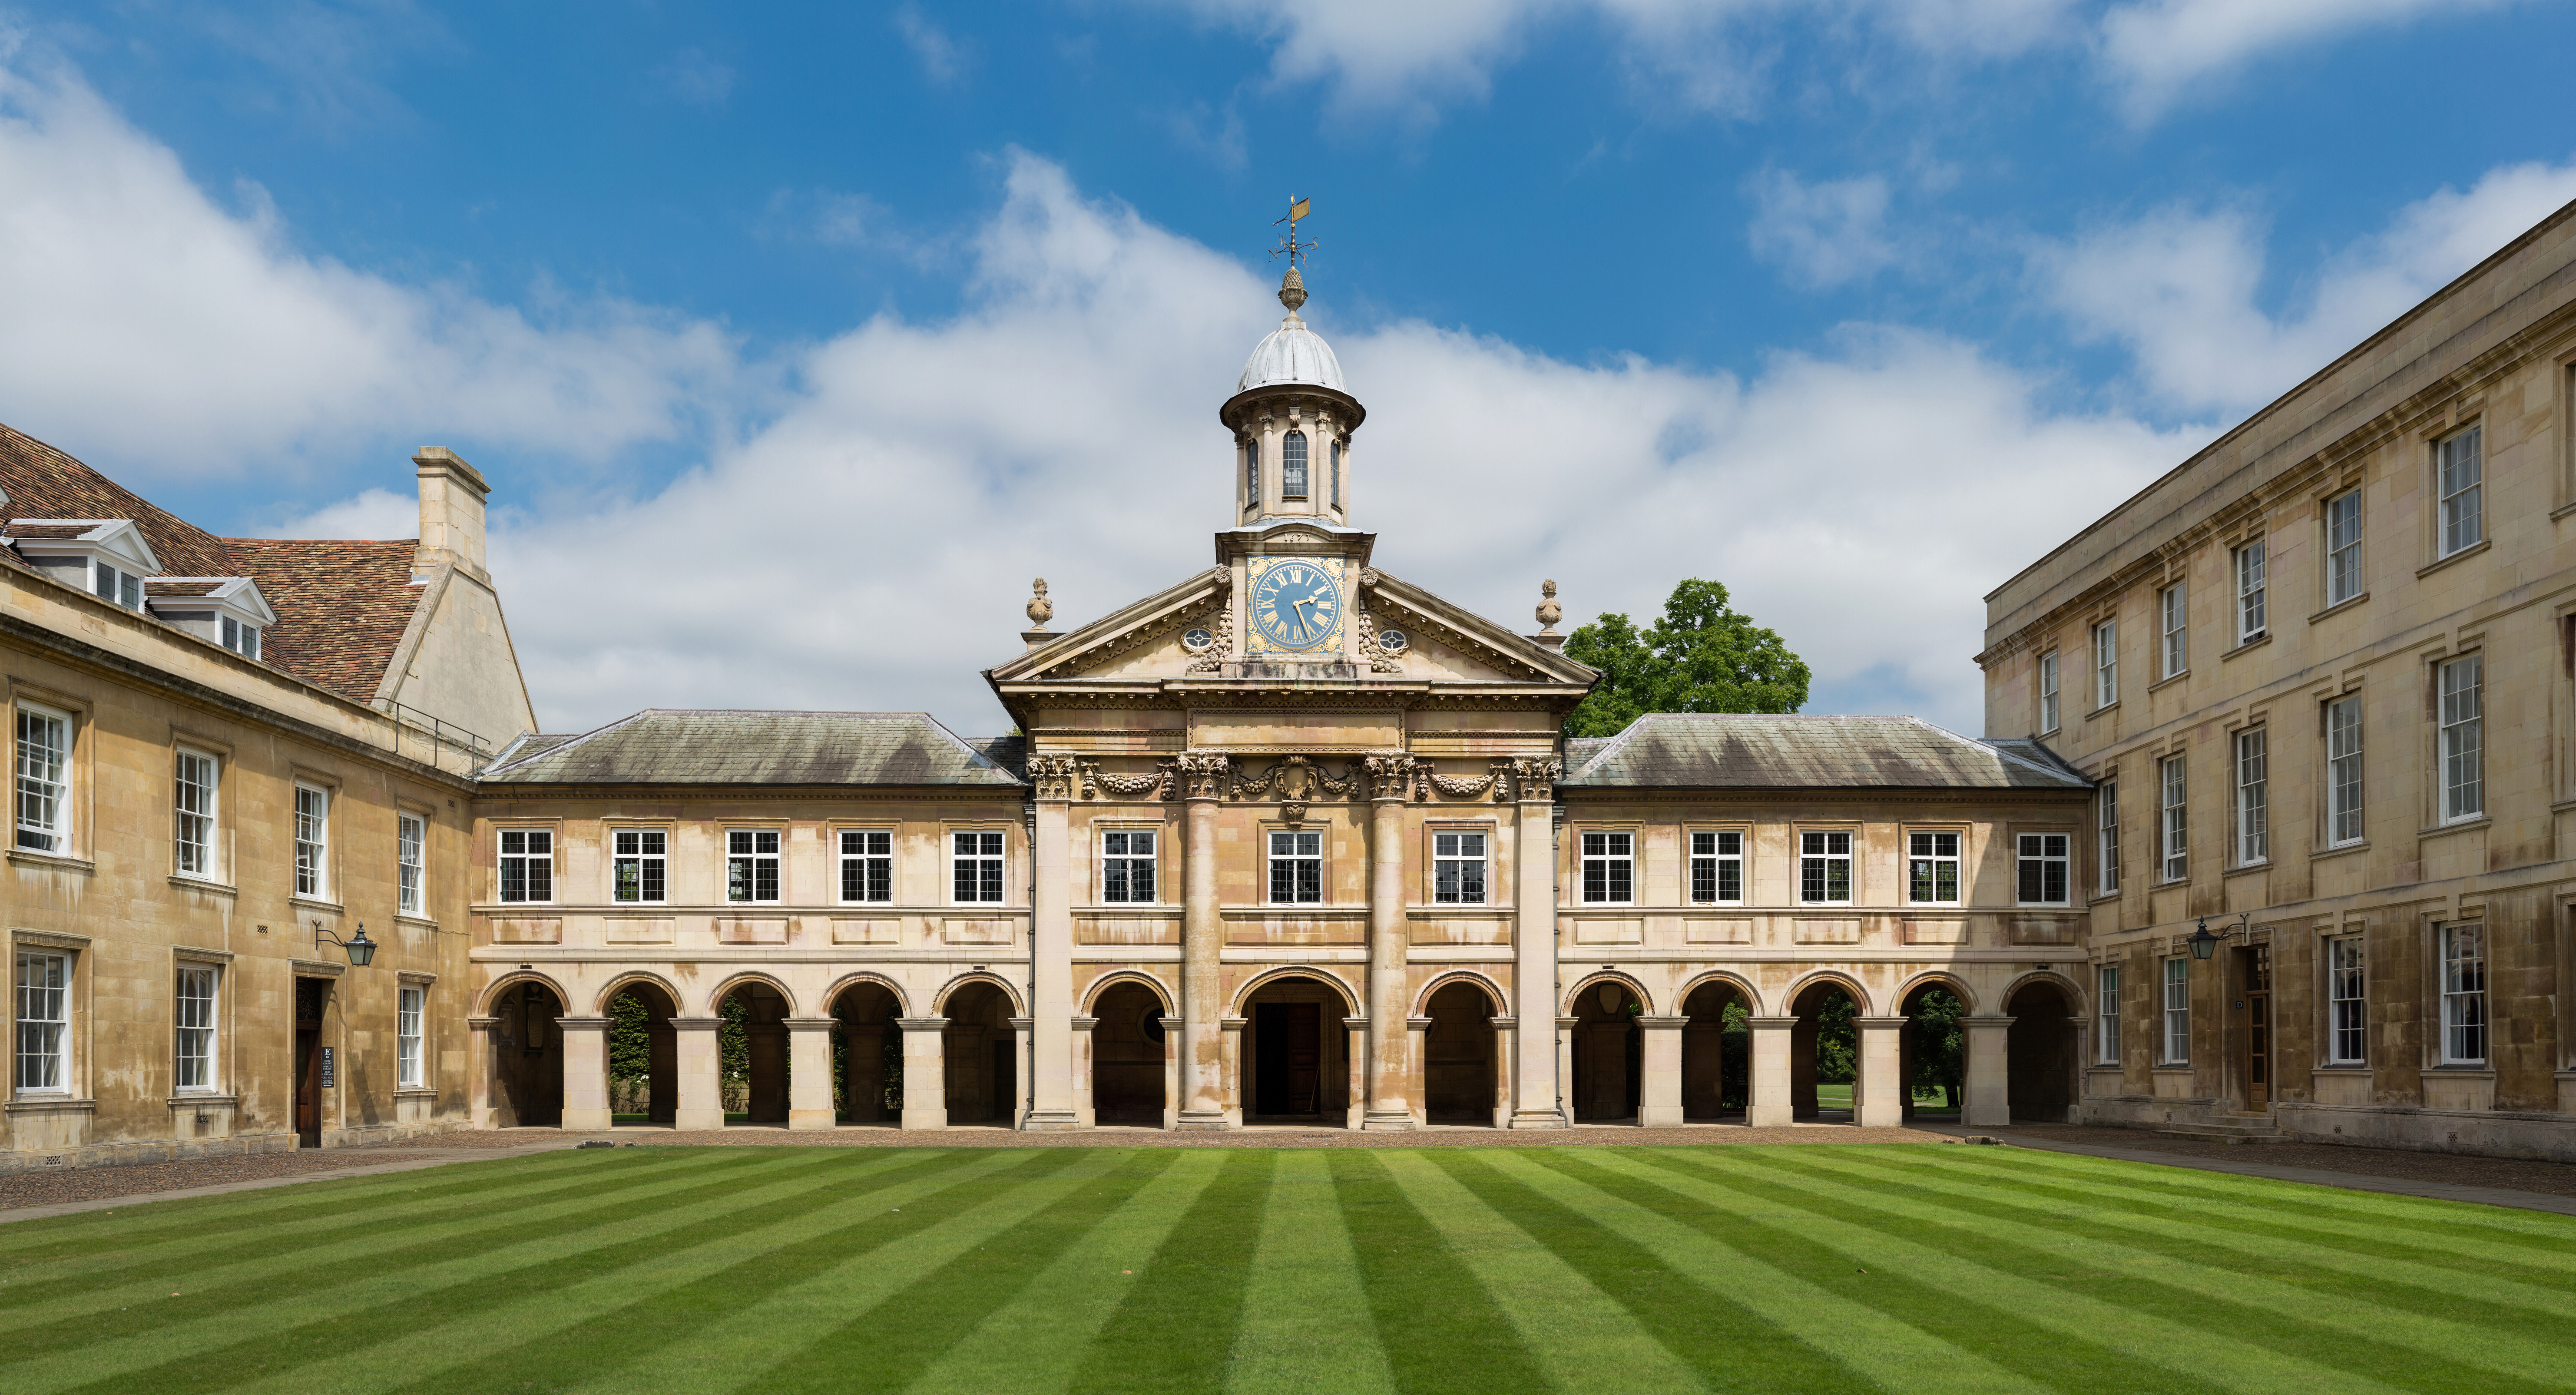 file emmanuel college front court cambridge uk diliff jpg